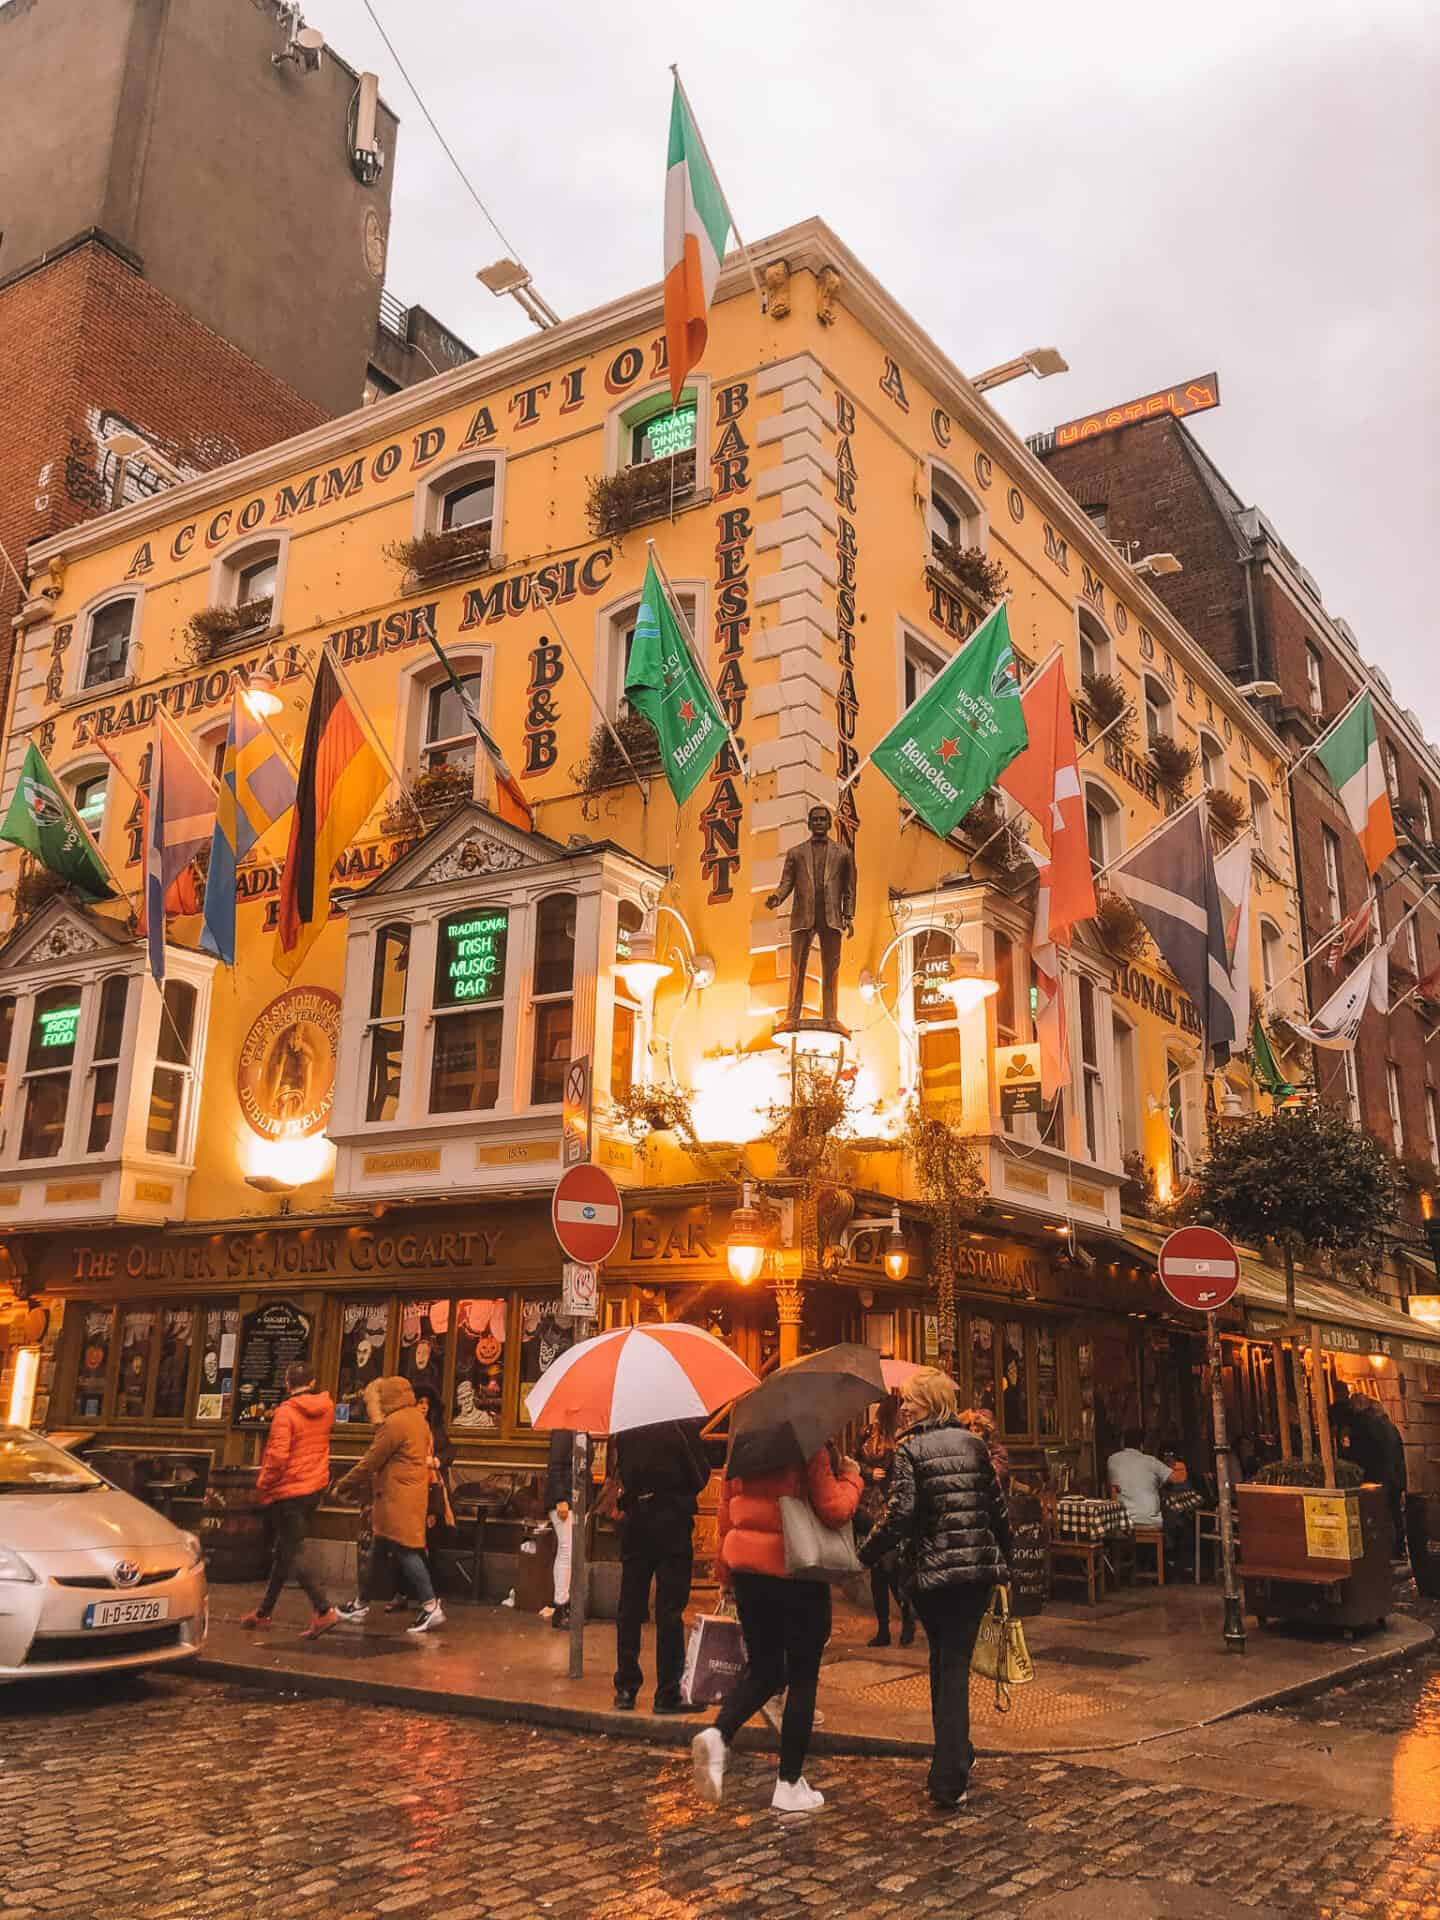 Decorate pub with people and umbrellas out the front